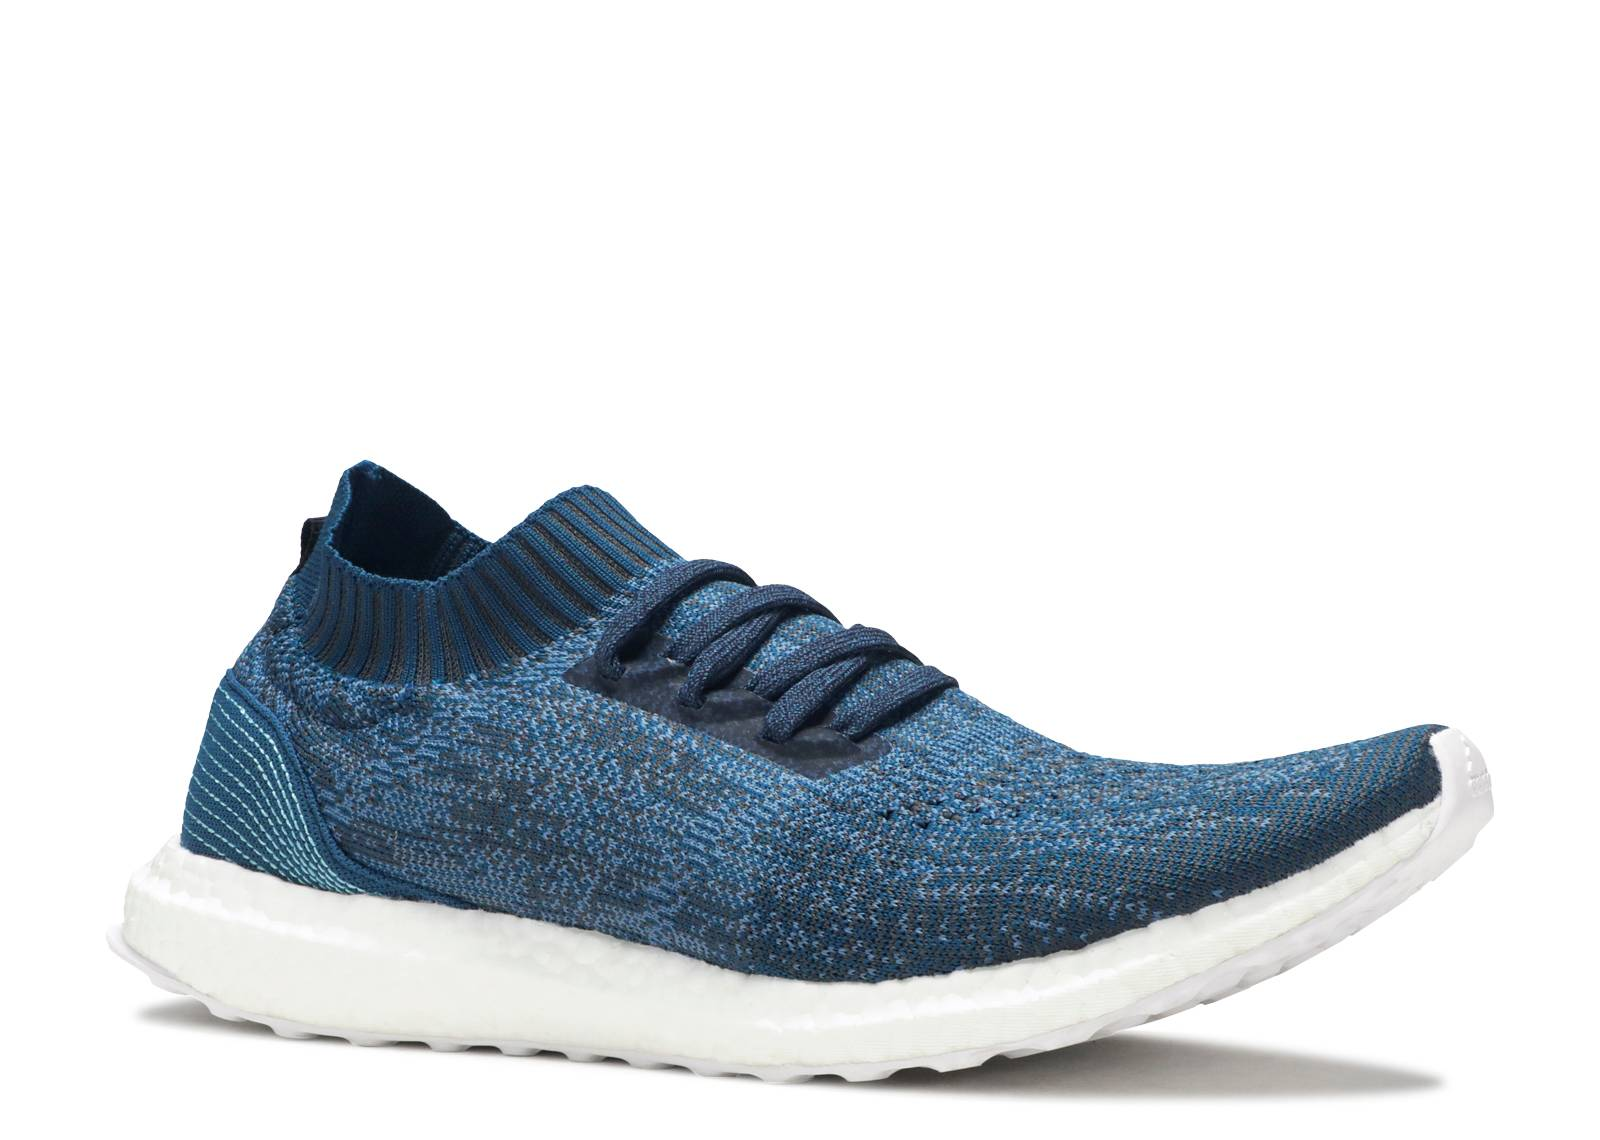 ADIDAS ULTRABOOST ULTRA BOOST UNCAGED BLUE PARLEY SIZE UK 8 8.5 9.5 10 11 12 NEW